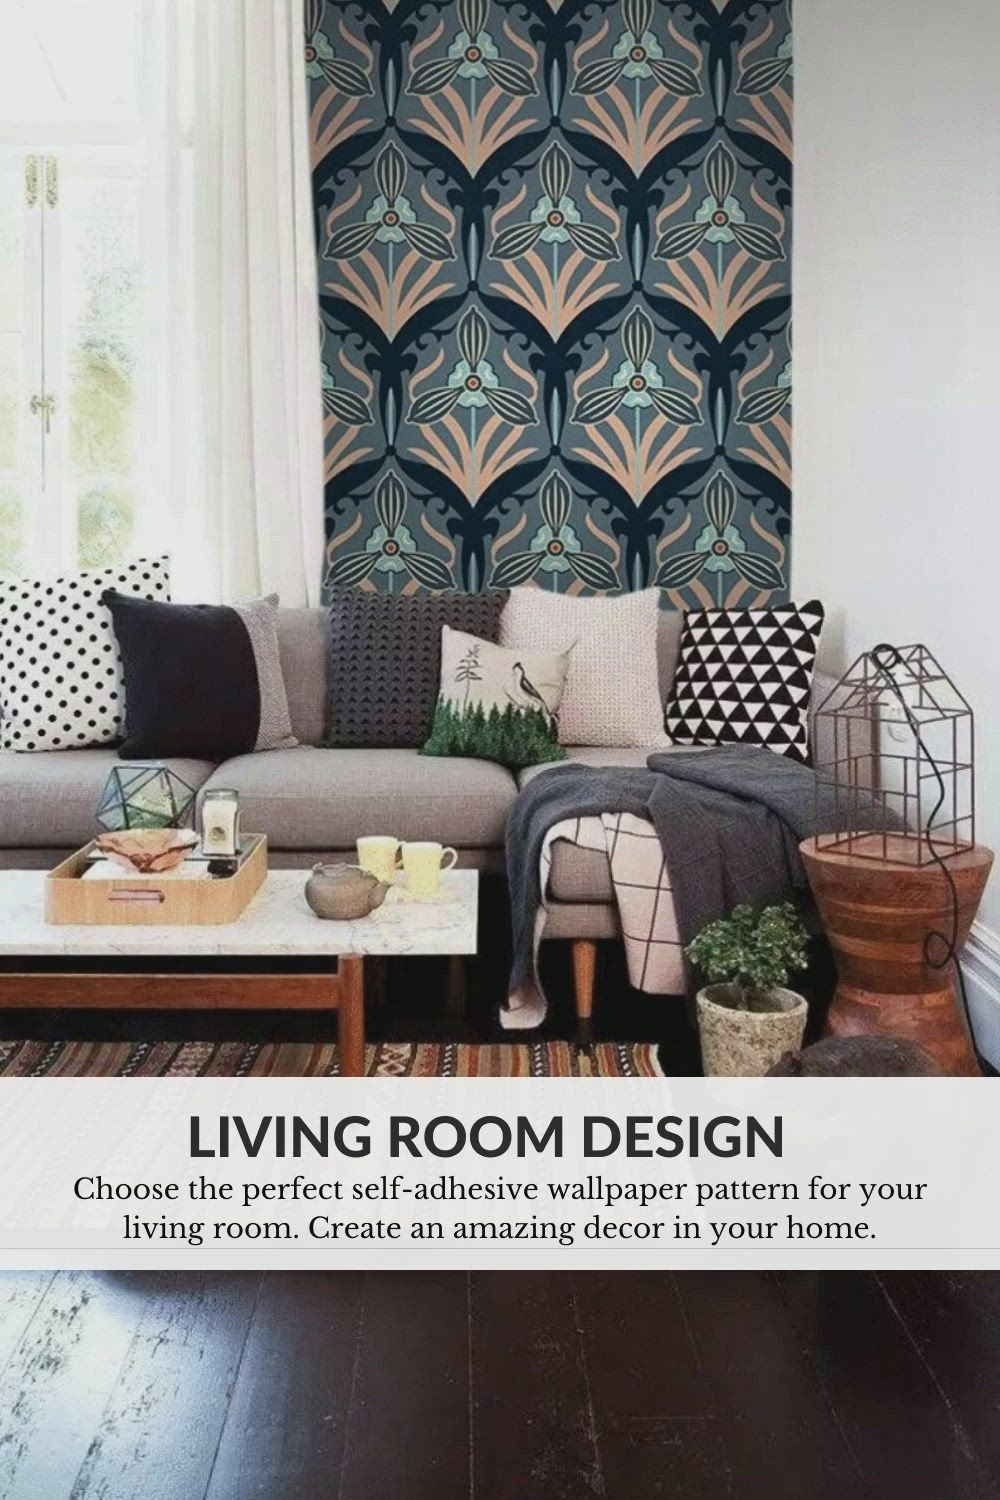 Living Room Design Home Decor Ideas With Peel And Stick Wallpaper Video Living Room Designs Grey Walls Removable Wallpaper